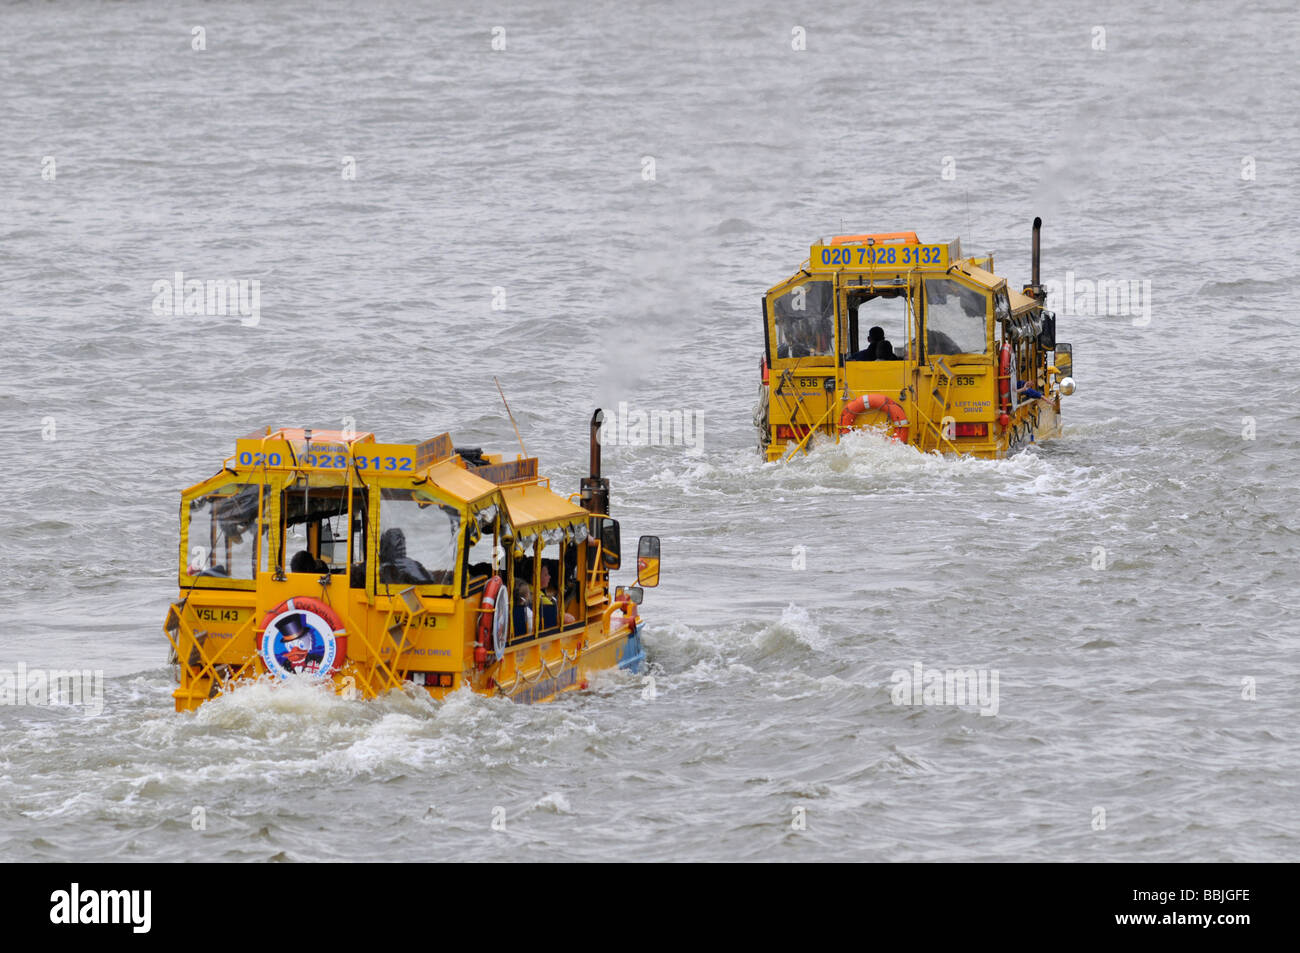 Amphibious vehicles, known as Duck tours, used as tourist attraction around Westminster and on the river Thames - Stock Image